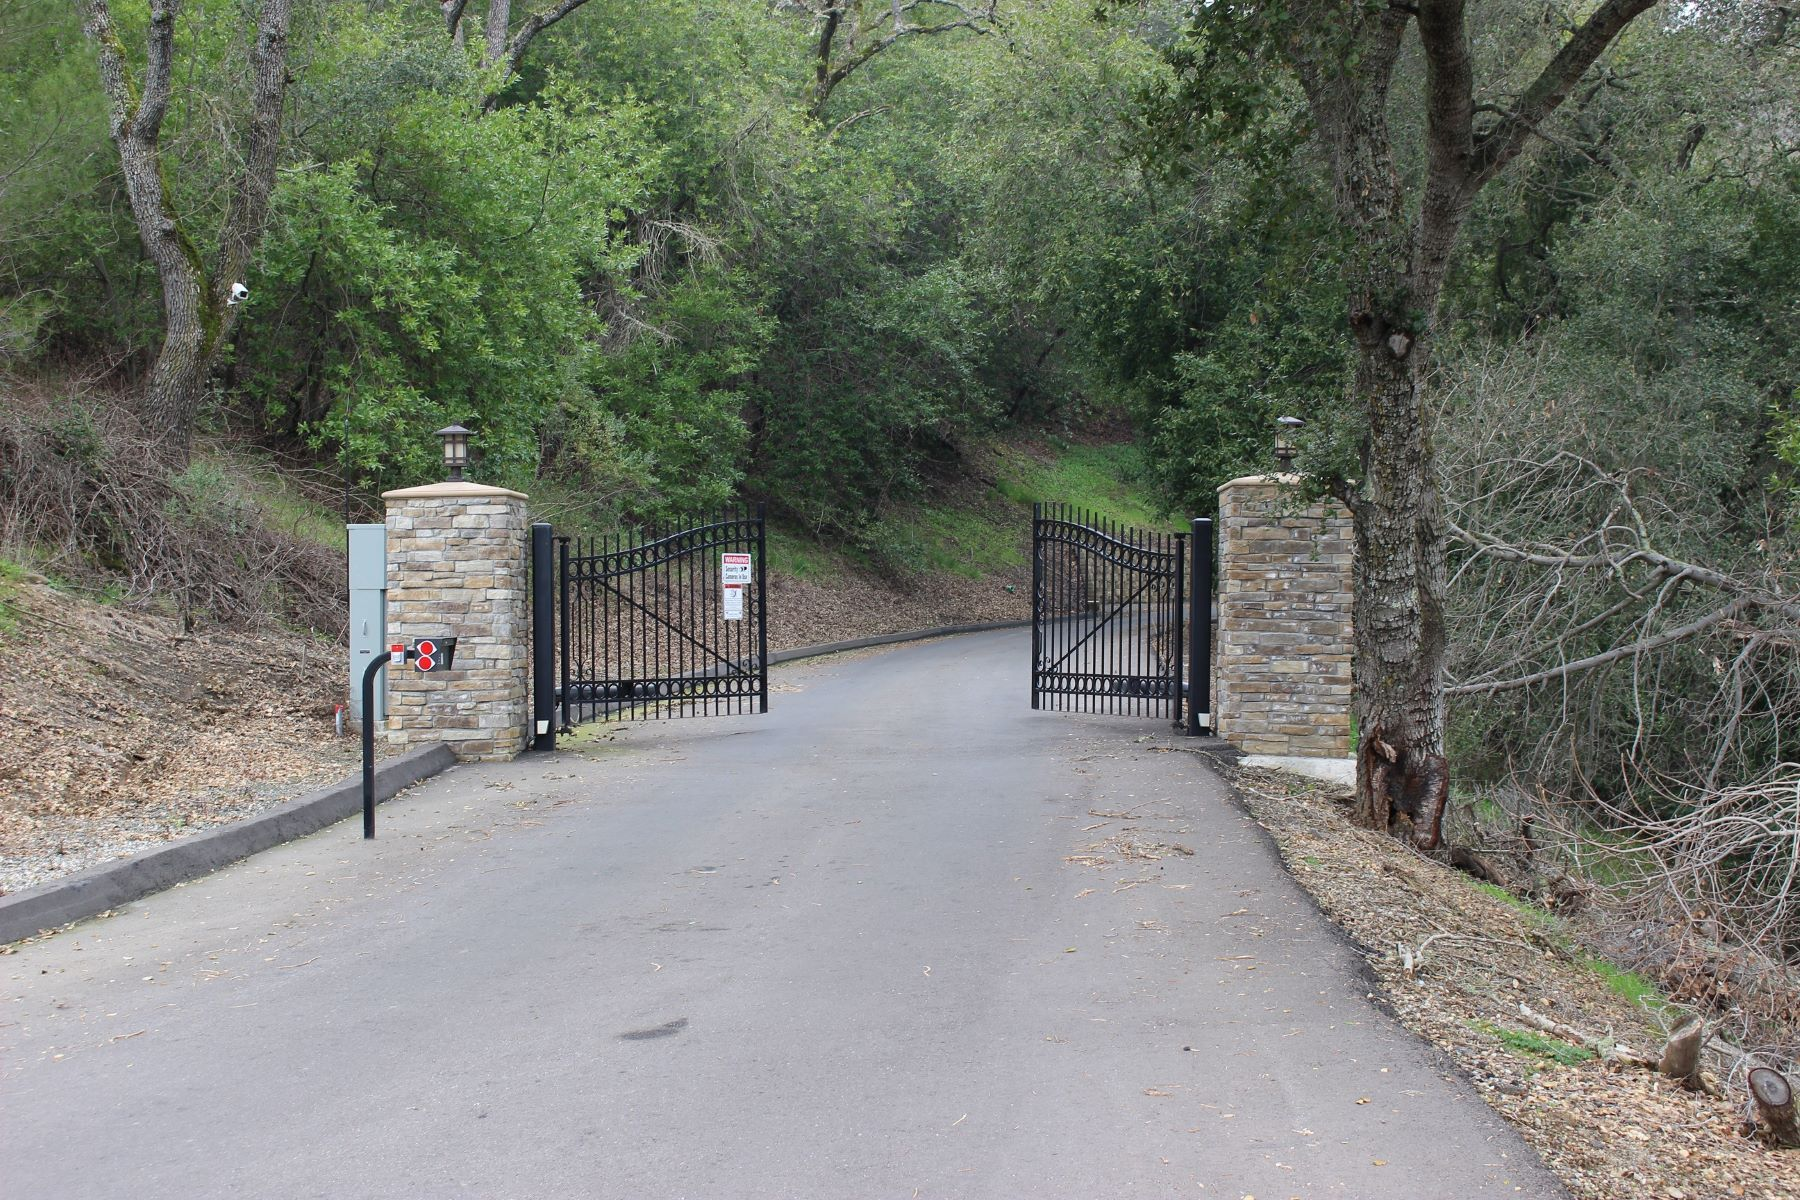 Land for Sale at Luxury Home Site with Panoramic Views Lot 1 4108 Foothill Rd Pleasanton, California 94588 United States